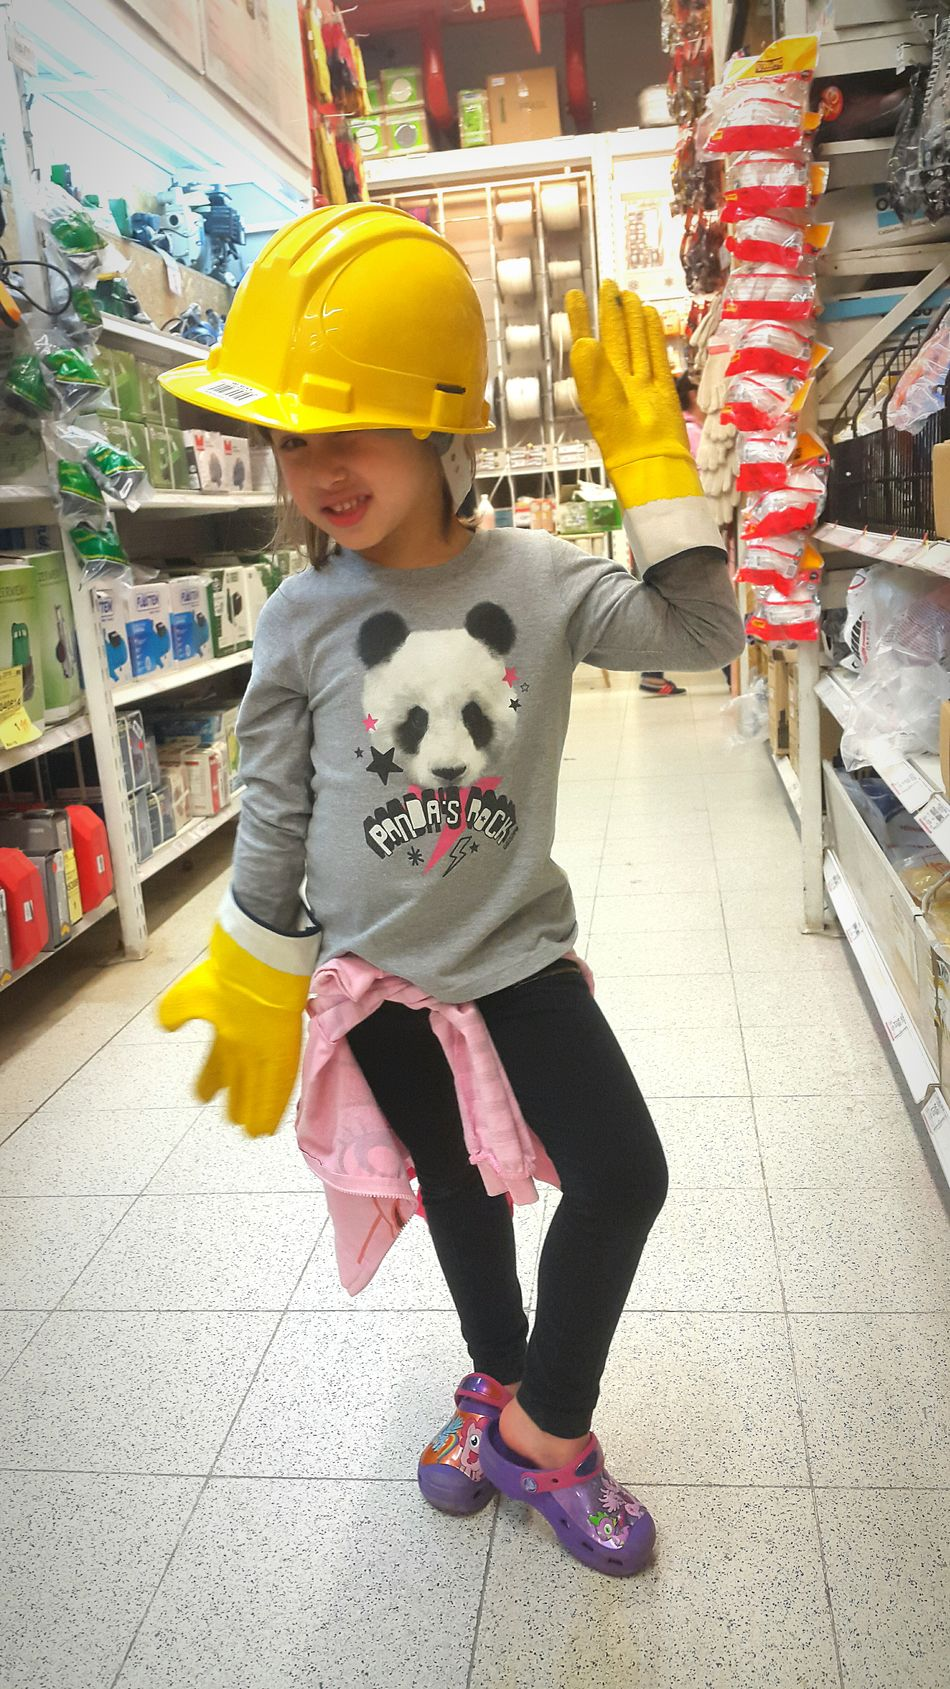 Vertical One Person Child Childhood People Buying Supermarket Safety First! Sweet Little Girl Industrialbeauty Safetyfirst Kidsportrait Kids Having Fun Kidsphotography Kids Portrait Kids Photography Yellow Gloves Safety First Yellow Hat Kids Being Kids Kids Playing Kids Industry Indoors